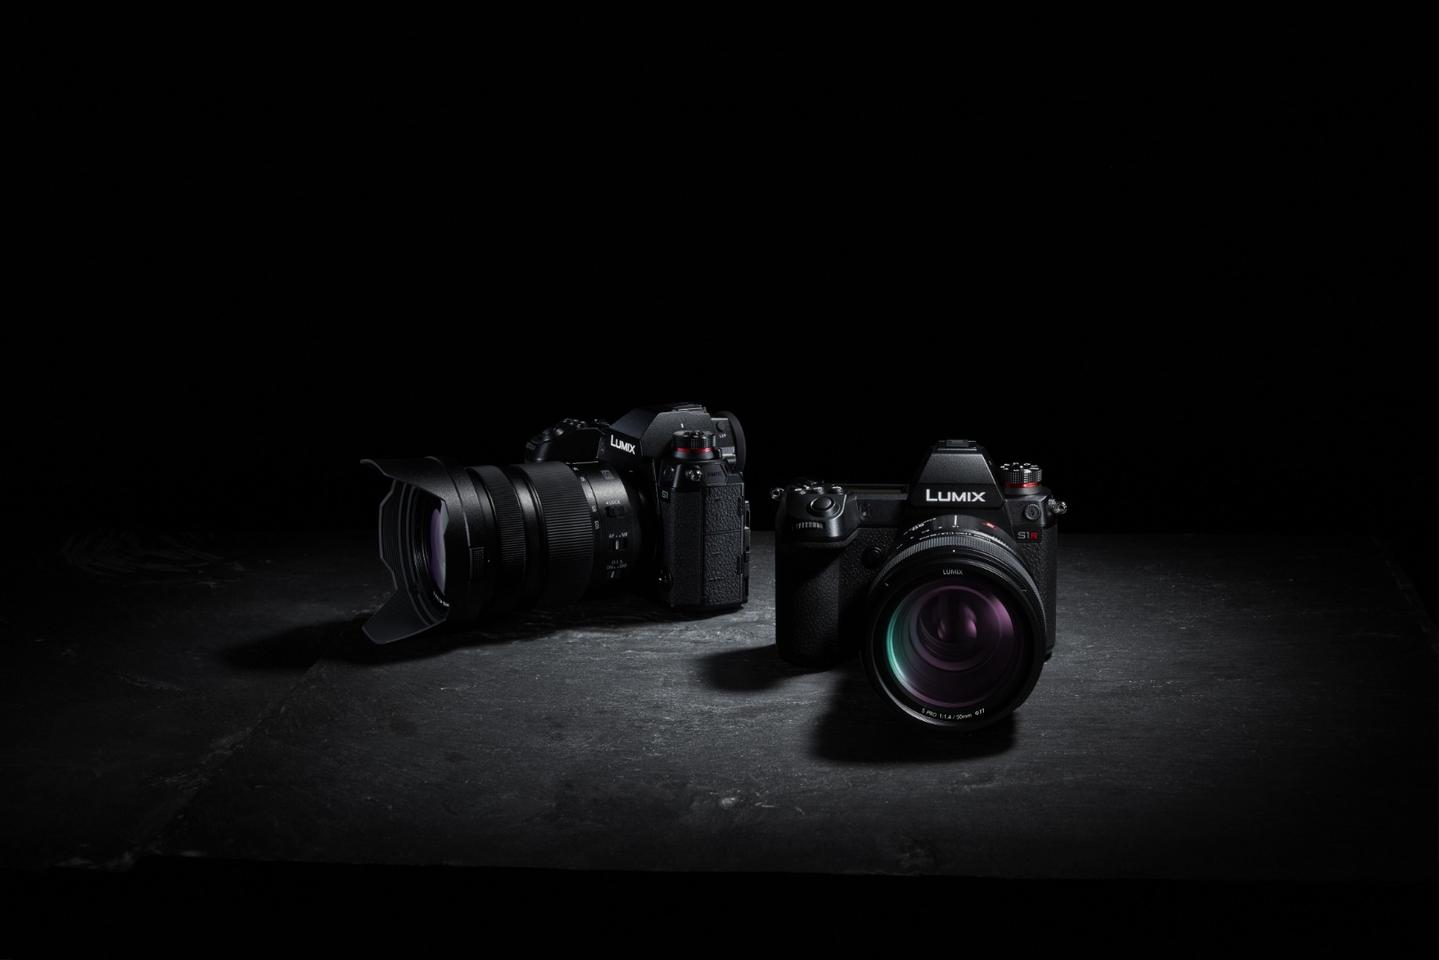 Panasonic officially launched the Lumix S1 and Lumix S1R full-frame mirrorless cameras in Barcelona, Spain, today